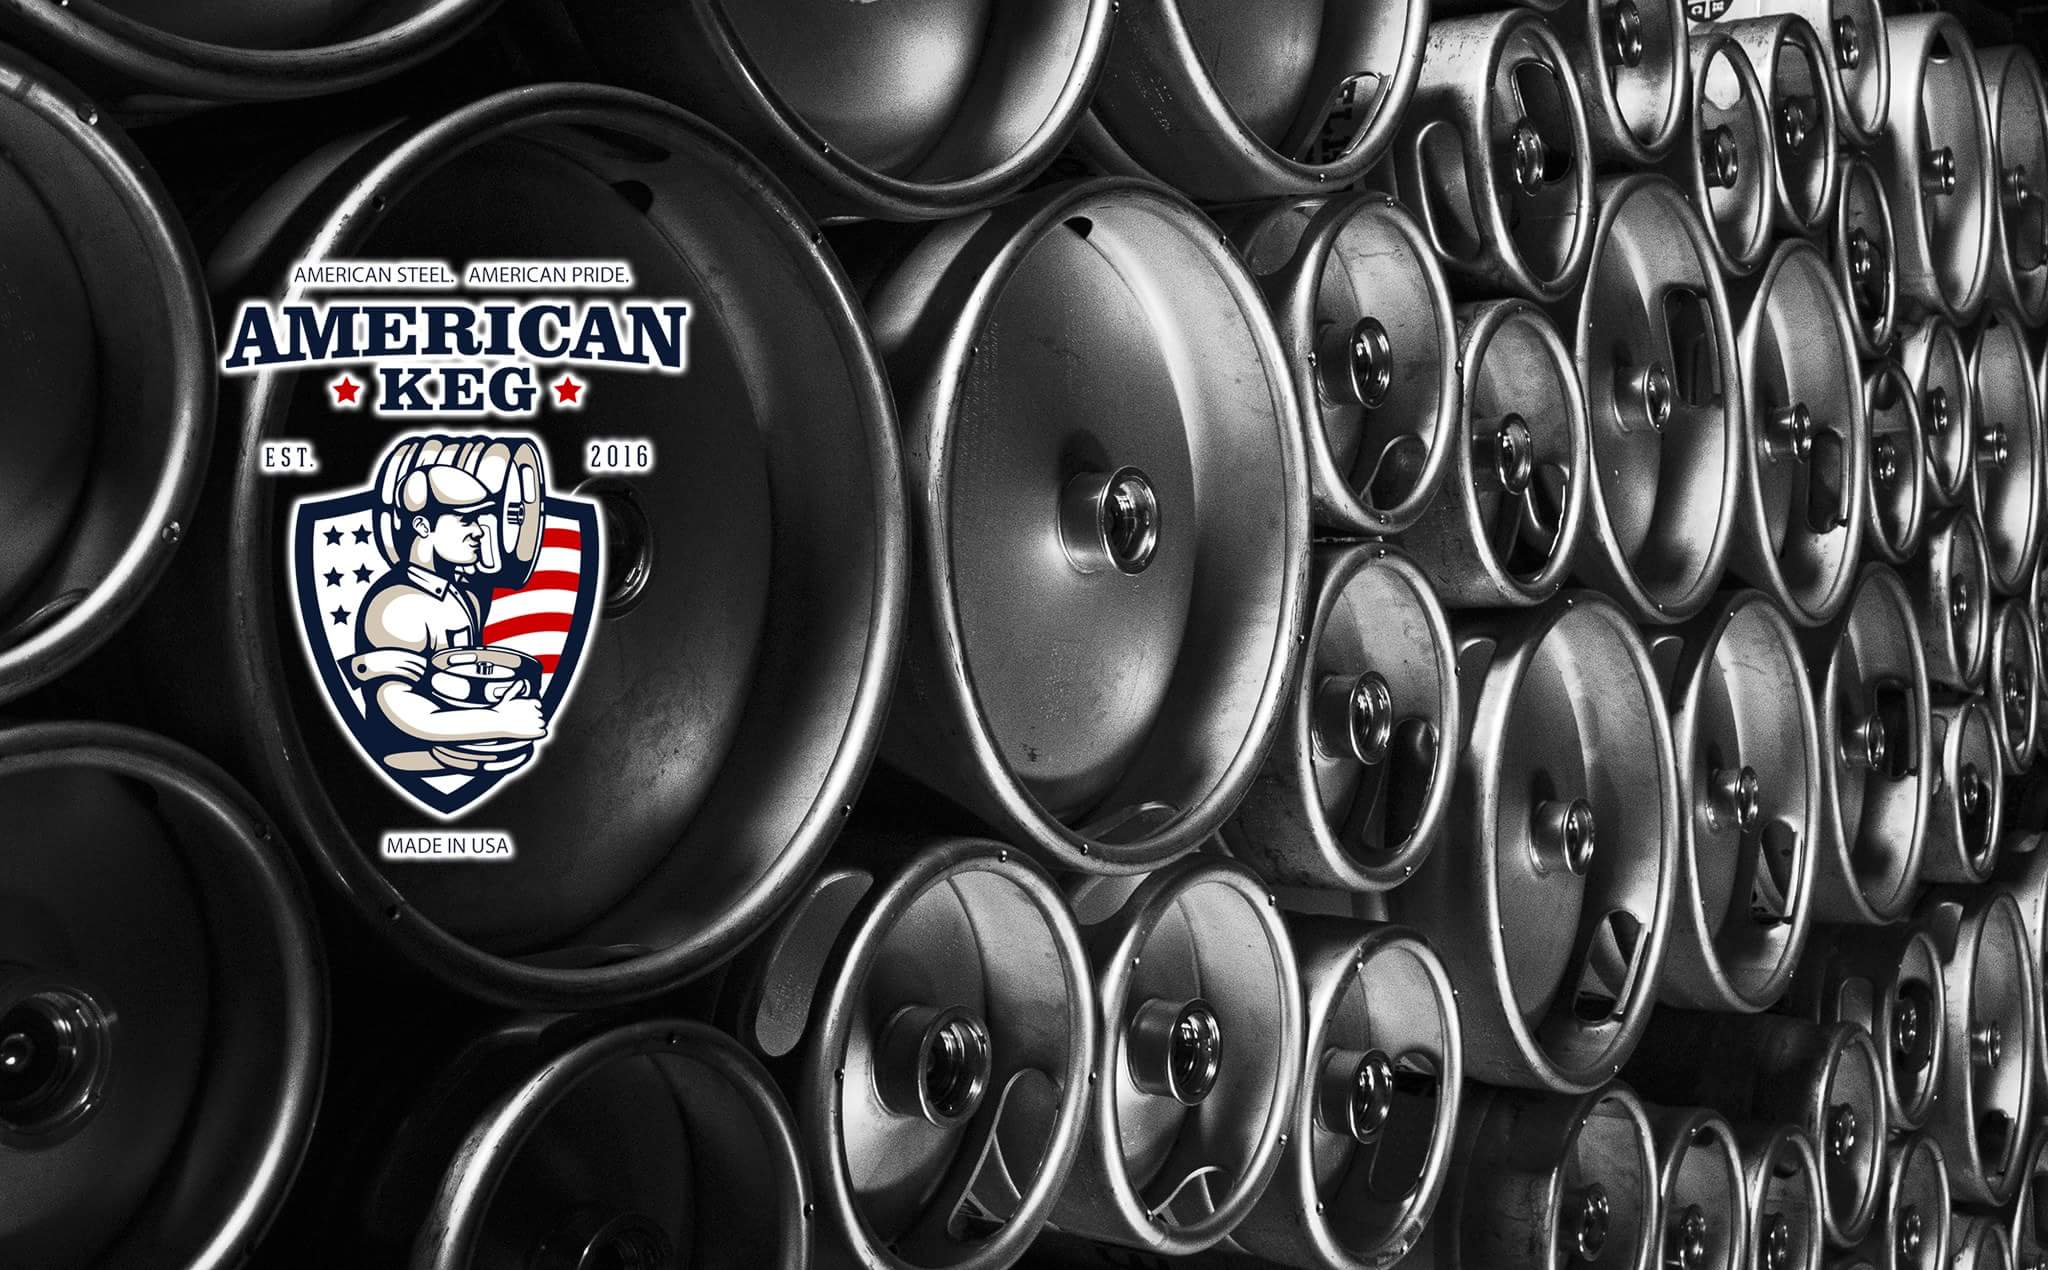 American Keg Co. of Pottstown may get kicked by new tariffs